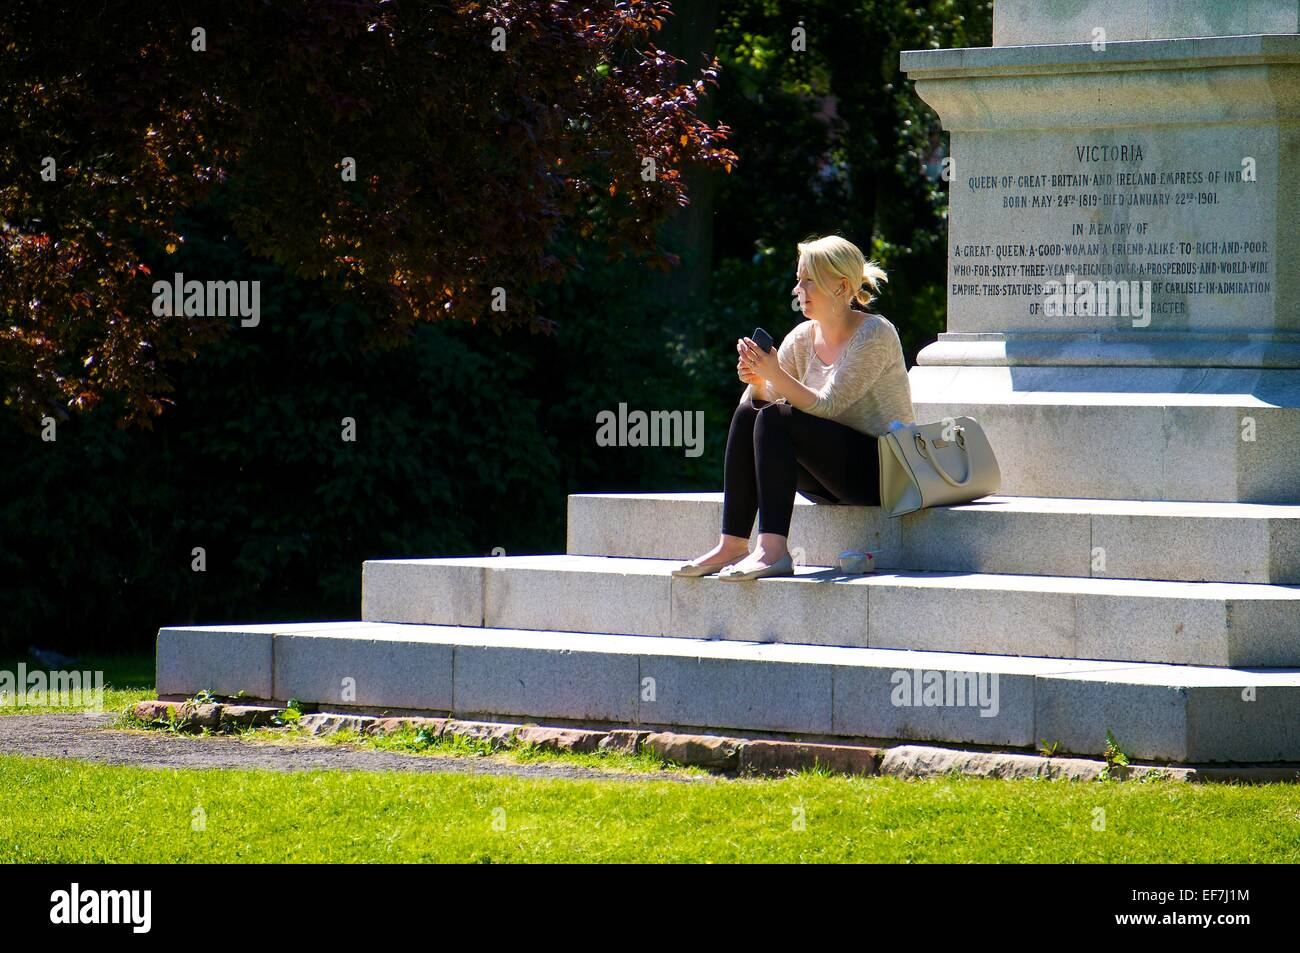 Woman listening to her music on a smart phone while siting on the steps of a monument. - Stock Image